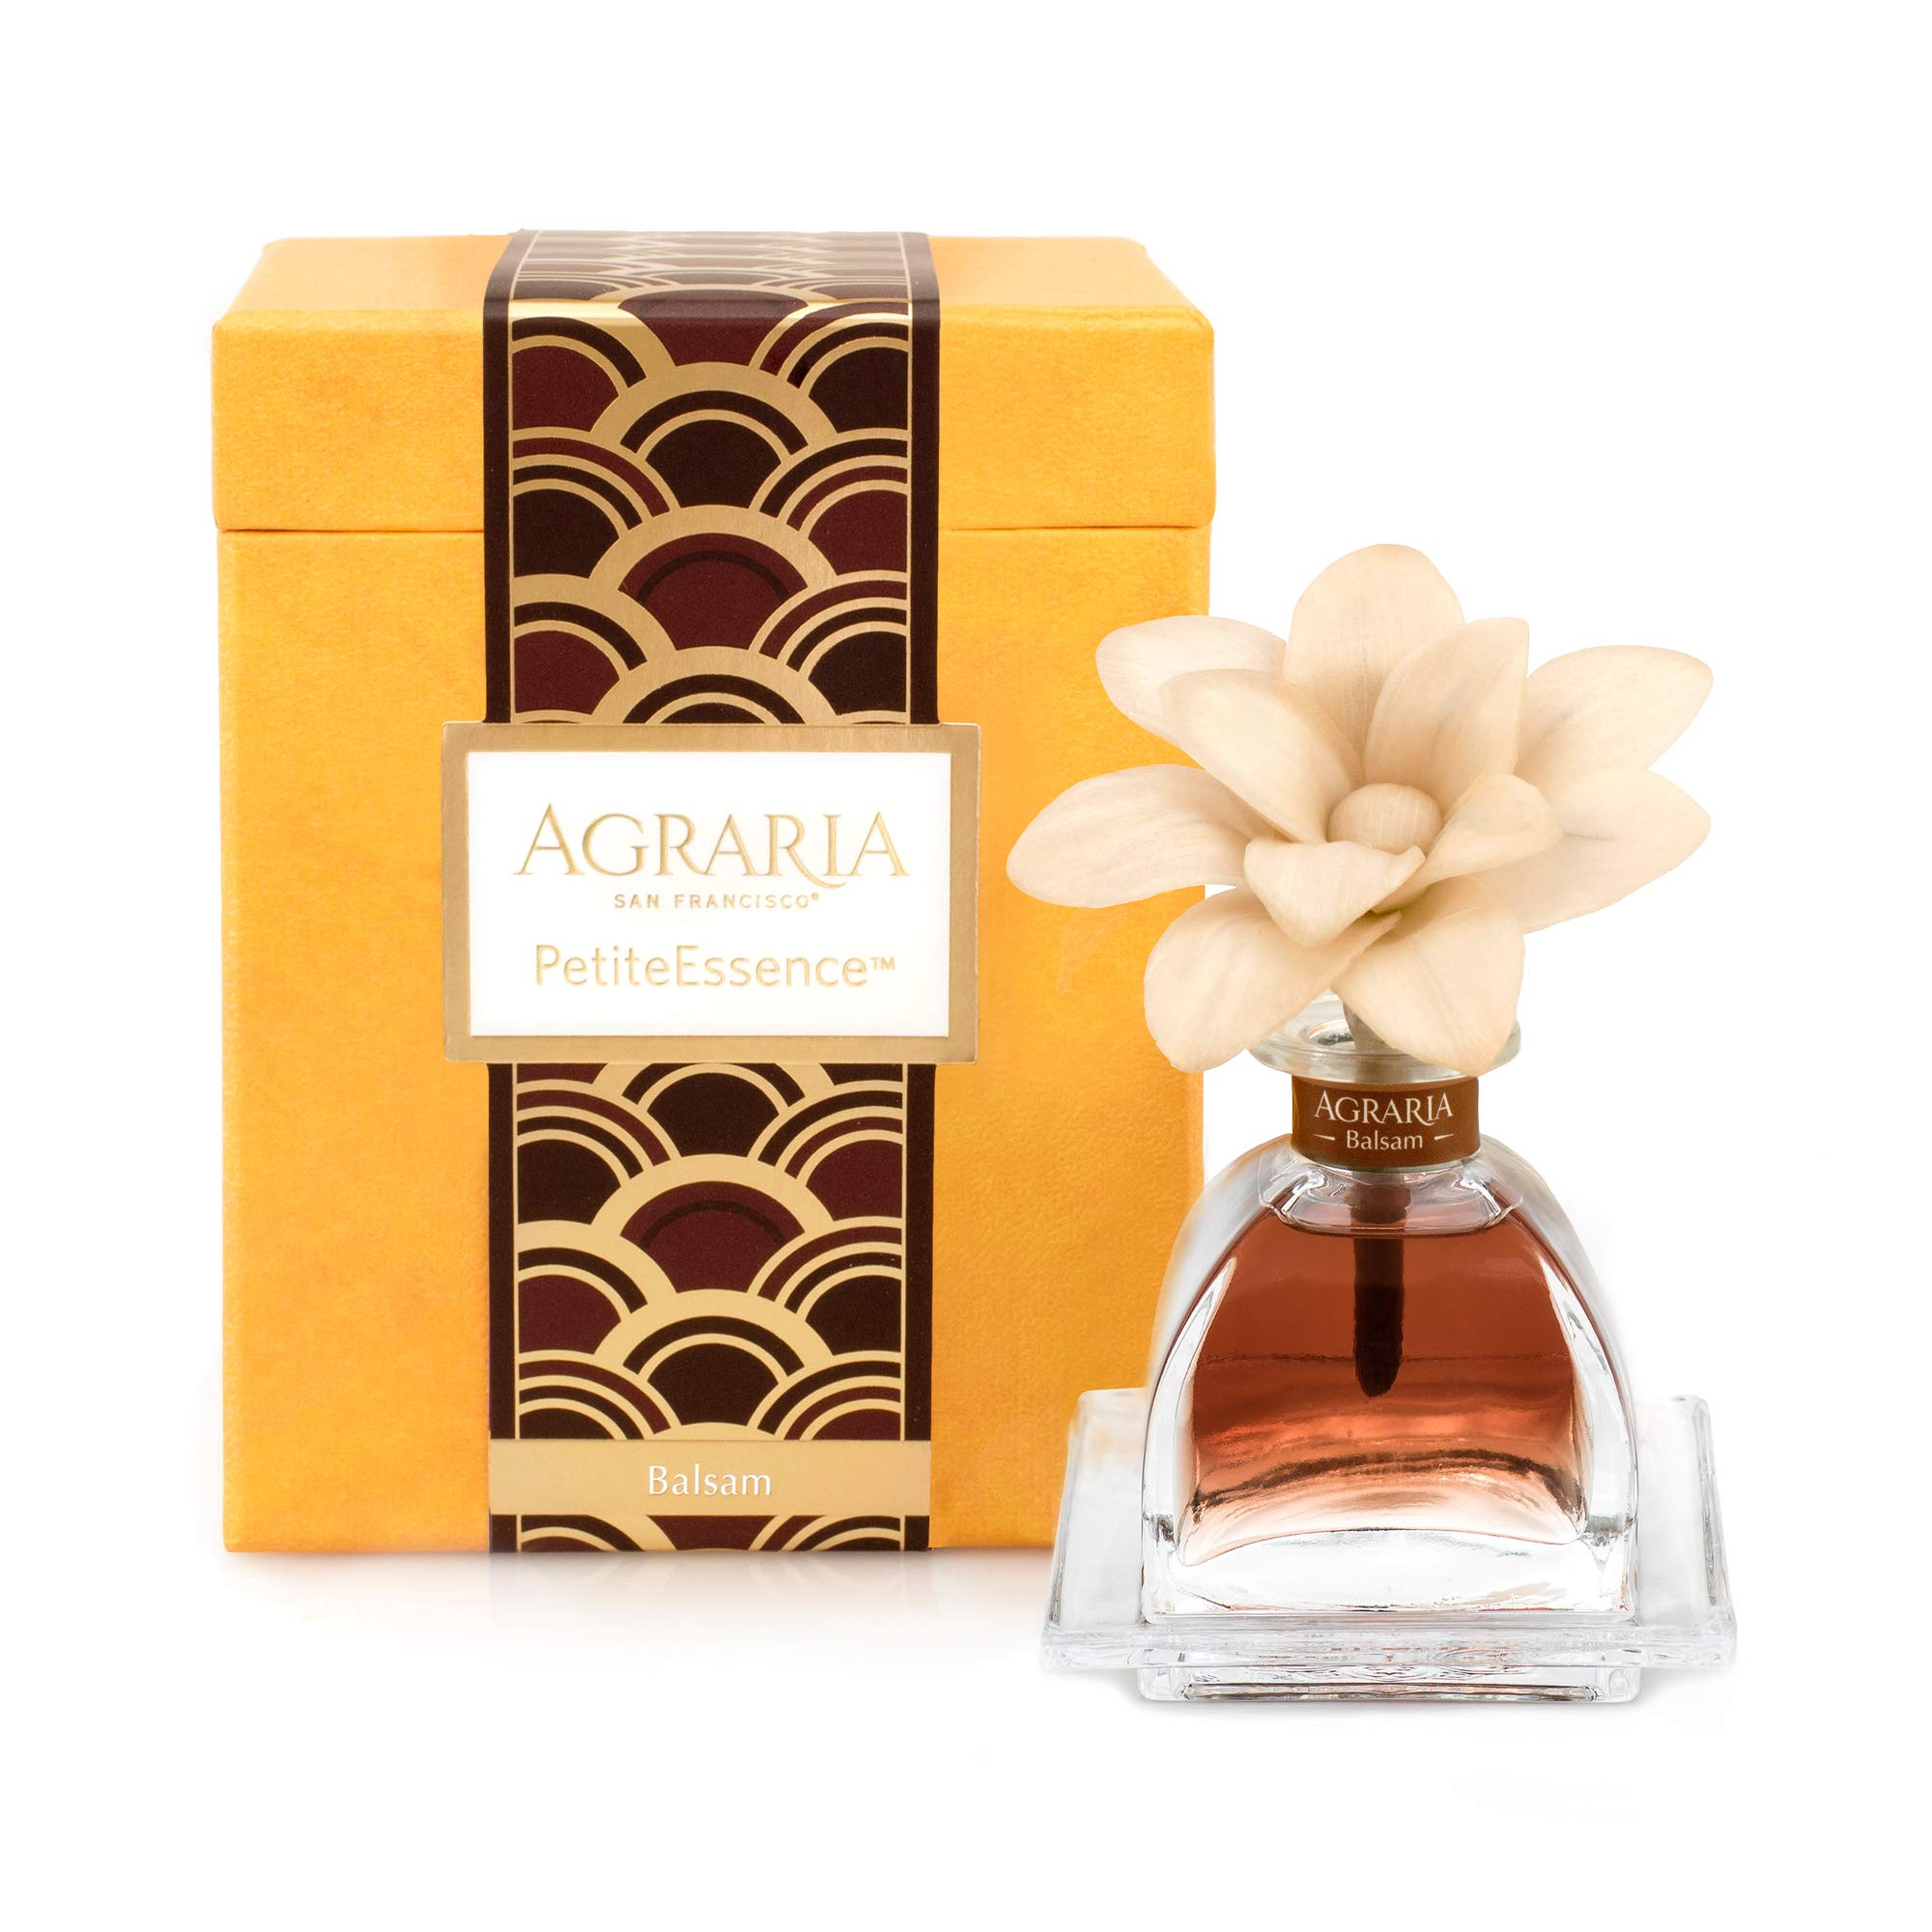 AGRARIA PetiteEssence Luxury Fragrance Diffuser Balsam Scent, Includes 1 Sola Flowers and 7 Reeds